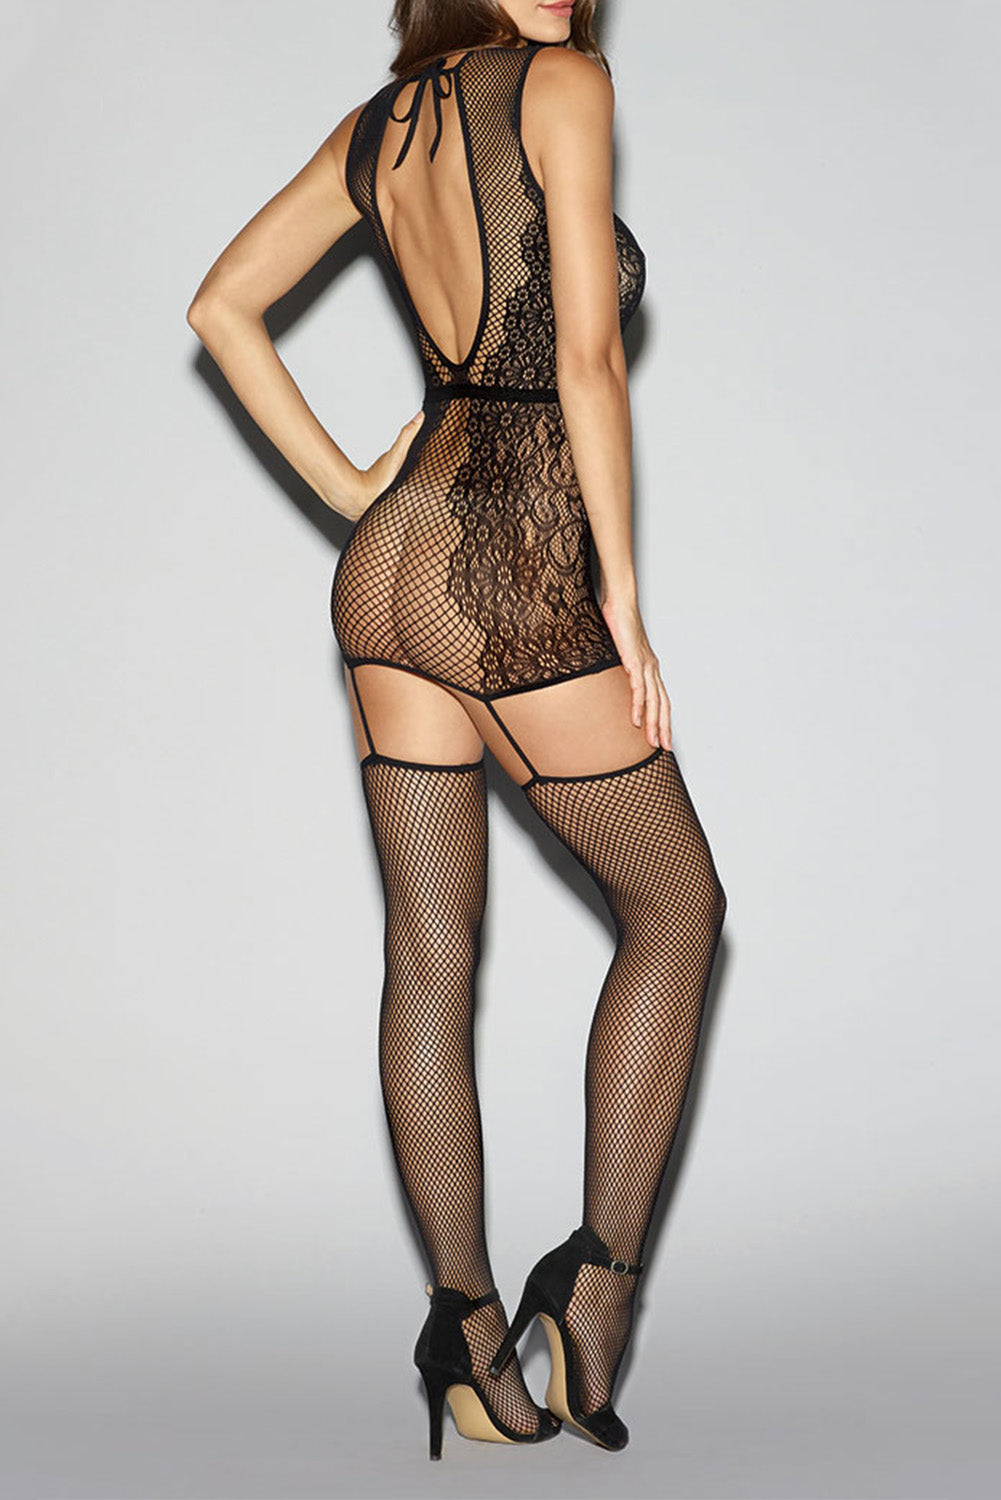 Black Lace Keyhole Hollow-out Fishnet Bodystocking Body Stockings Discount Designer Fashion Clothes Shoes Bags Women Men Kids Children Black Owned Business